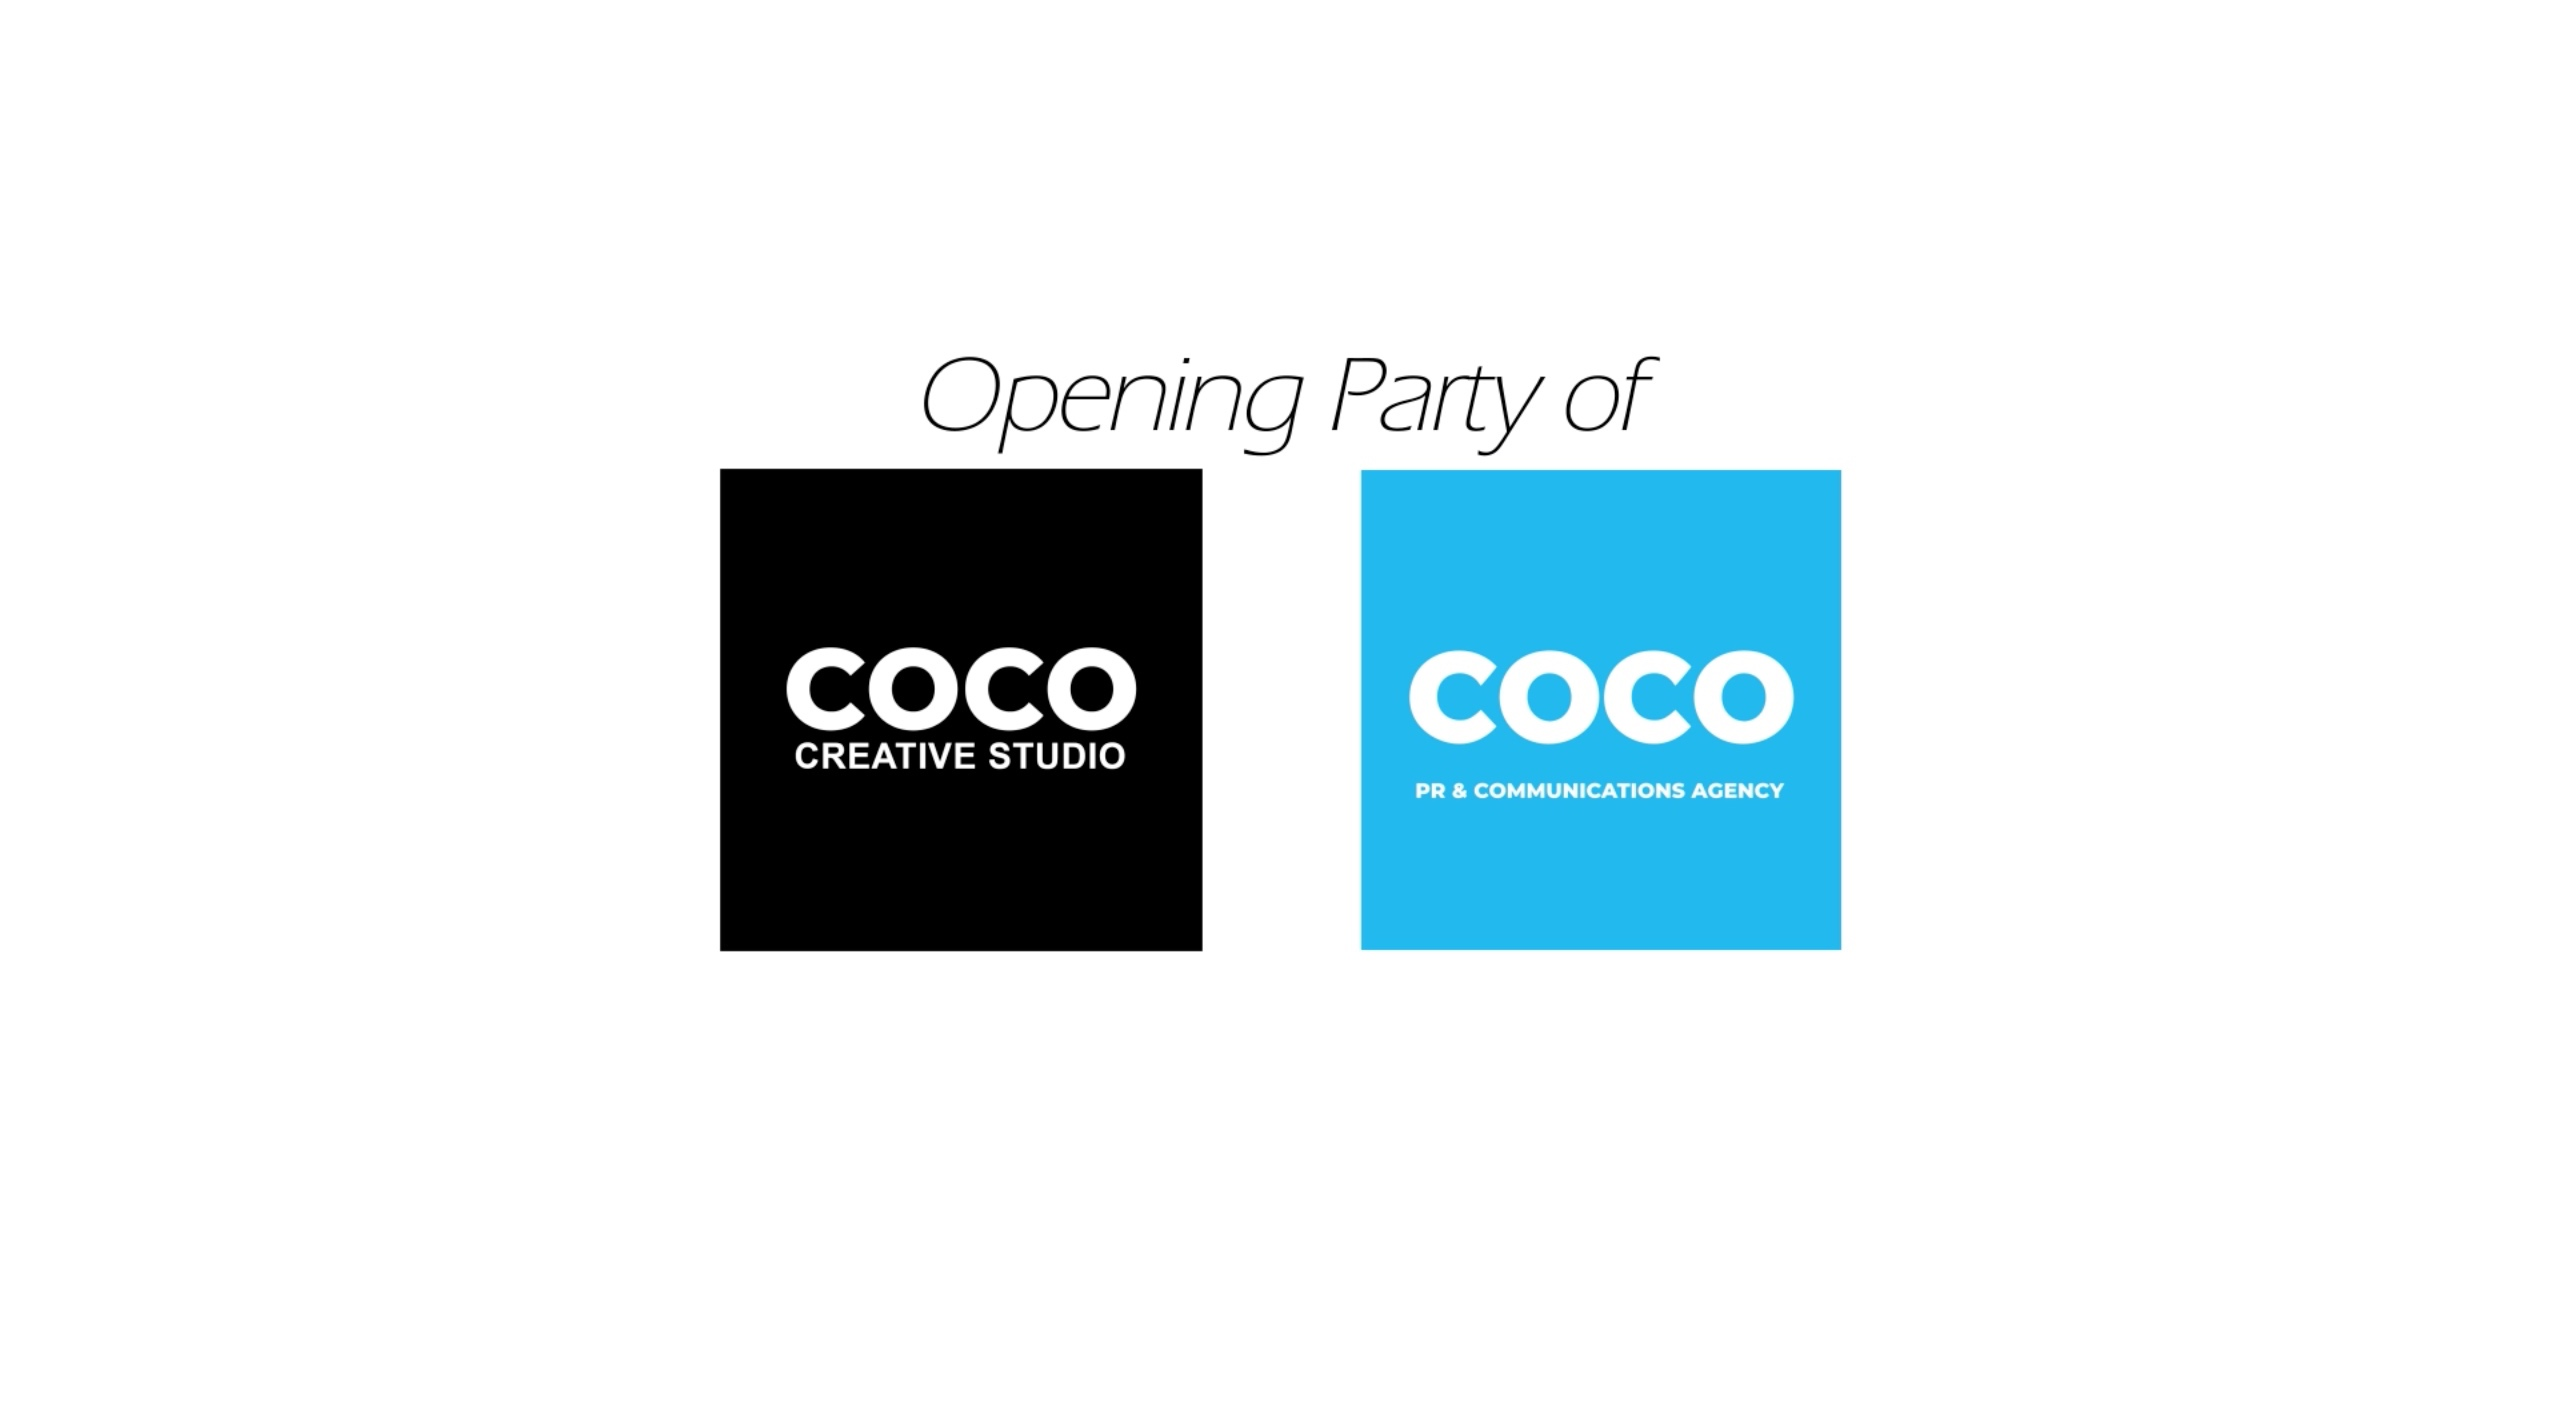 COCO PR & COMMUNICATIONS AGENCY COCO CREATIVE STUDIO OPENING PARTY SINGAPORE